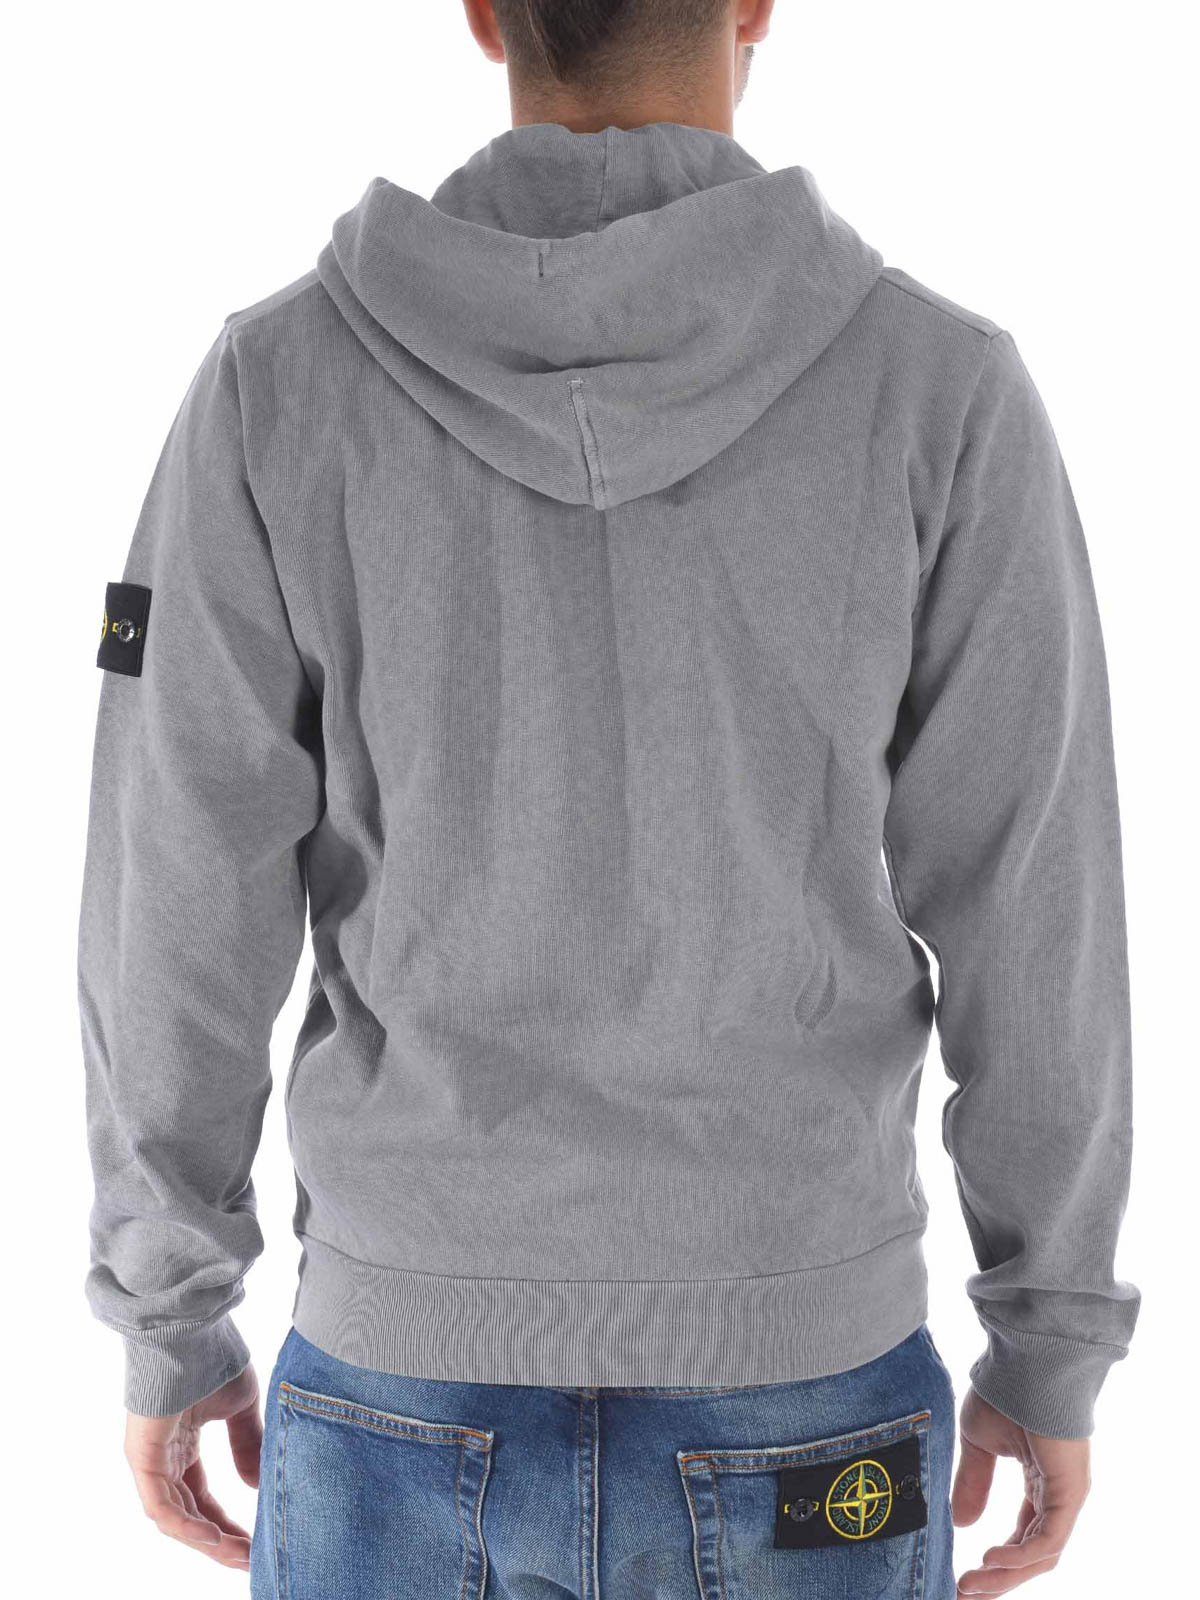 sweatshirt und pullover grau von stone island sweatshirts und pullover ikrix 62161 v0160. Black Bedroom Furniture Sets. Home Design Ideas